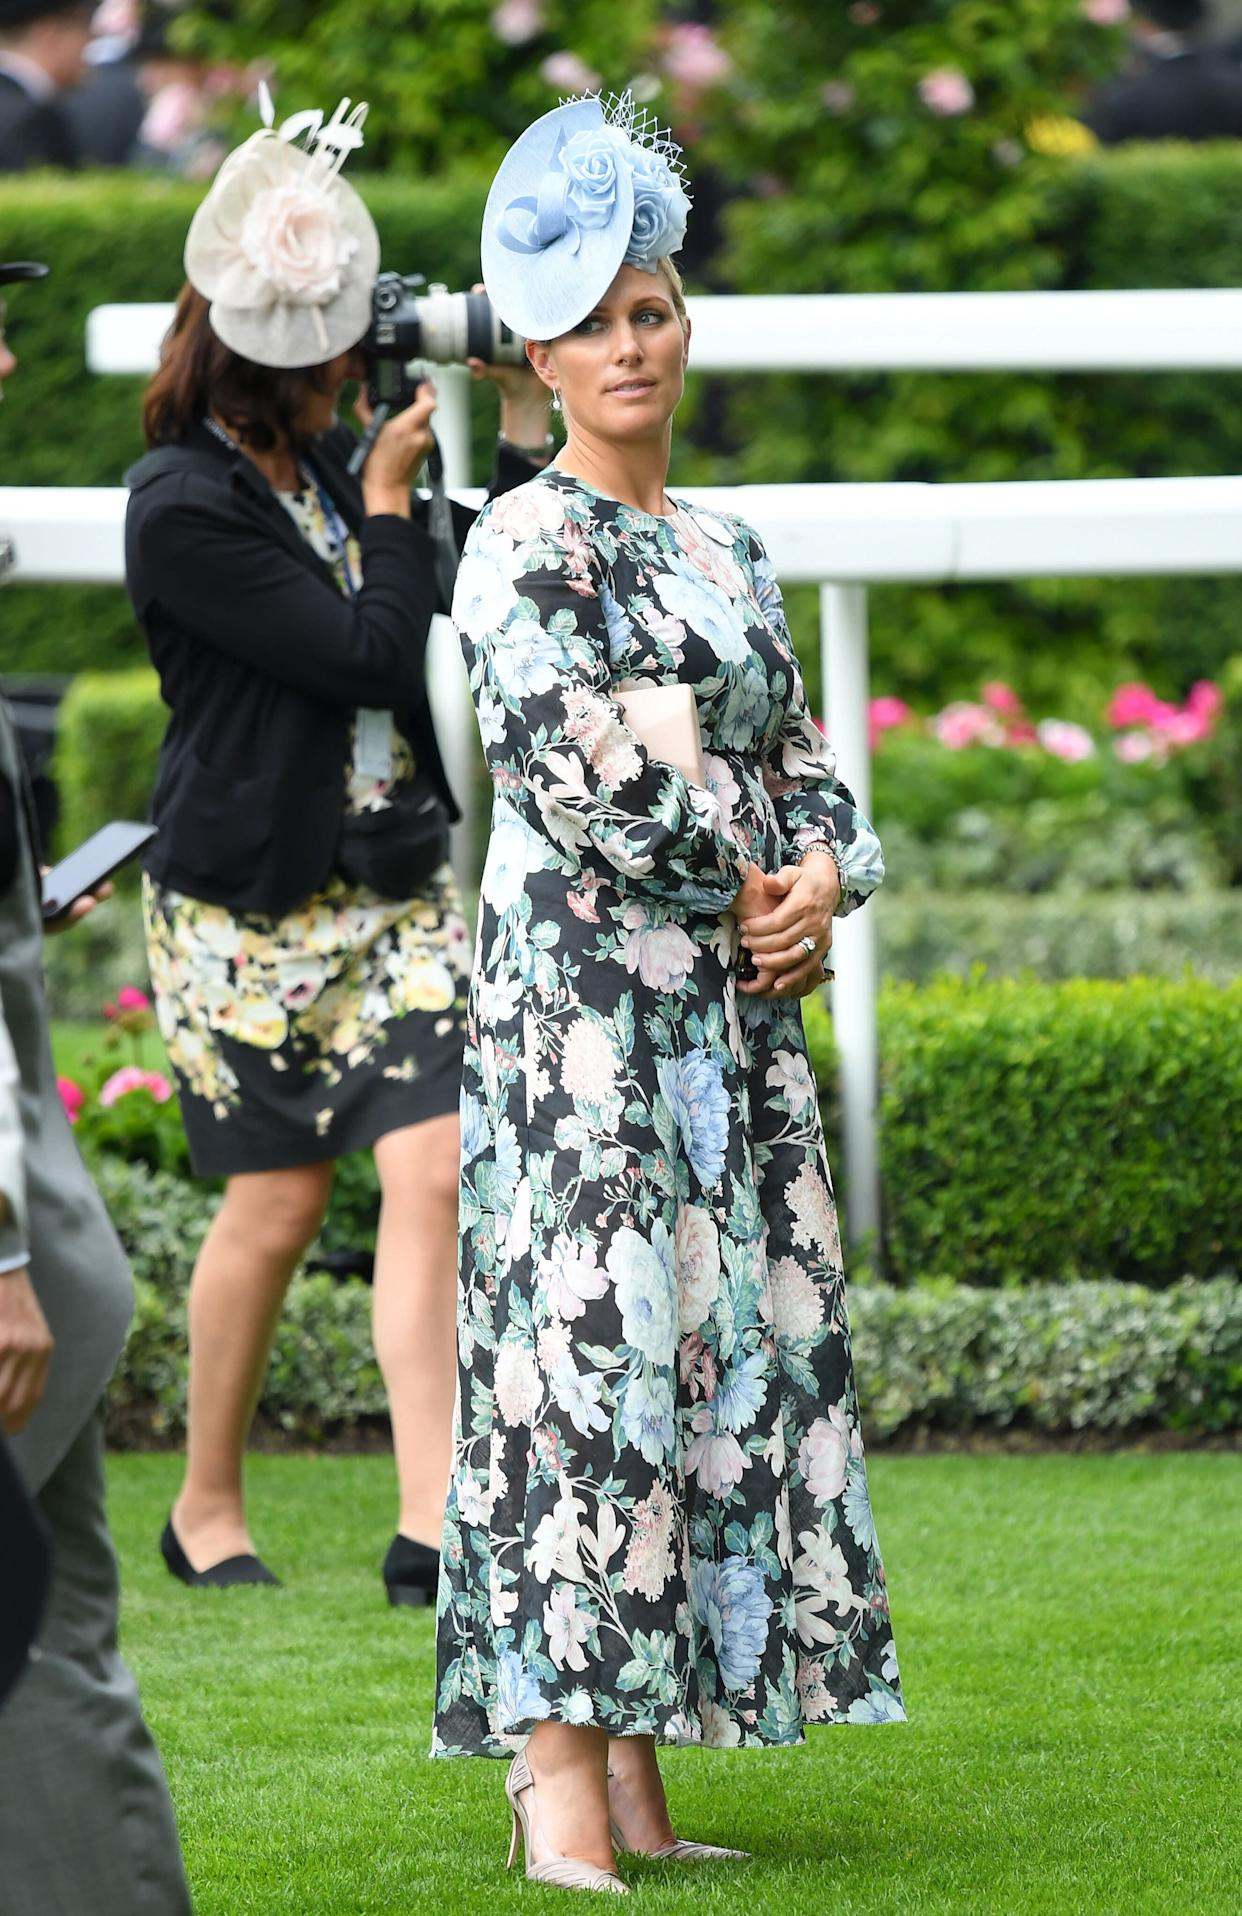 Zara Phillips in a blue hat and blue and pink floral design. (Photo: Karwai Tang via Getty Images)